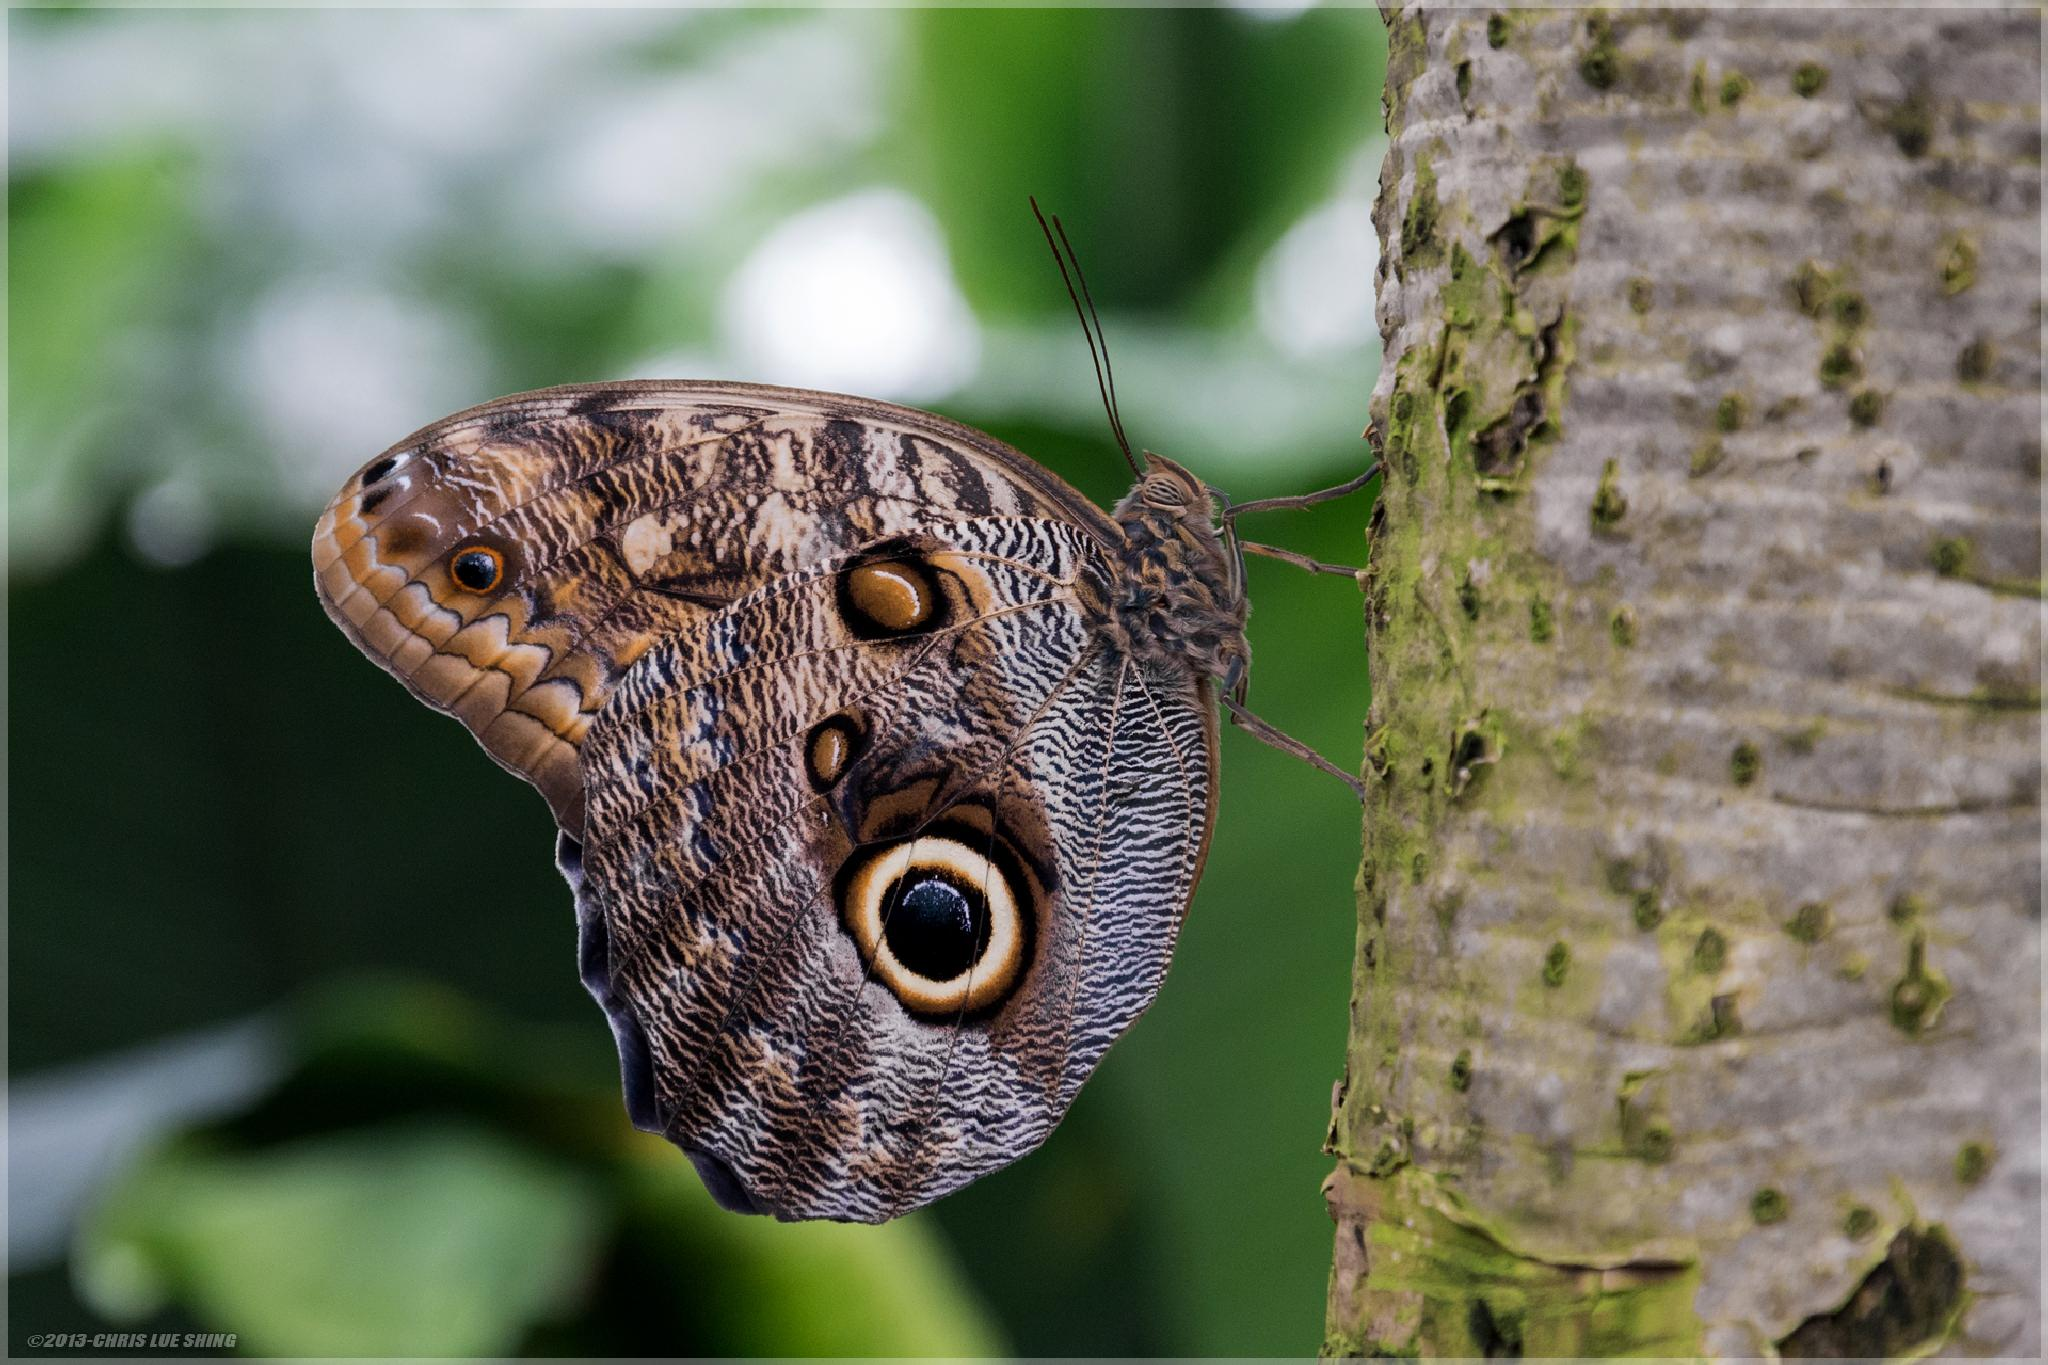 Owl Butterfly by Chris Lue Shing